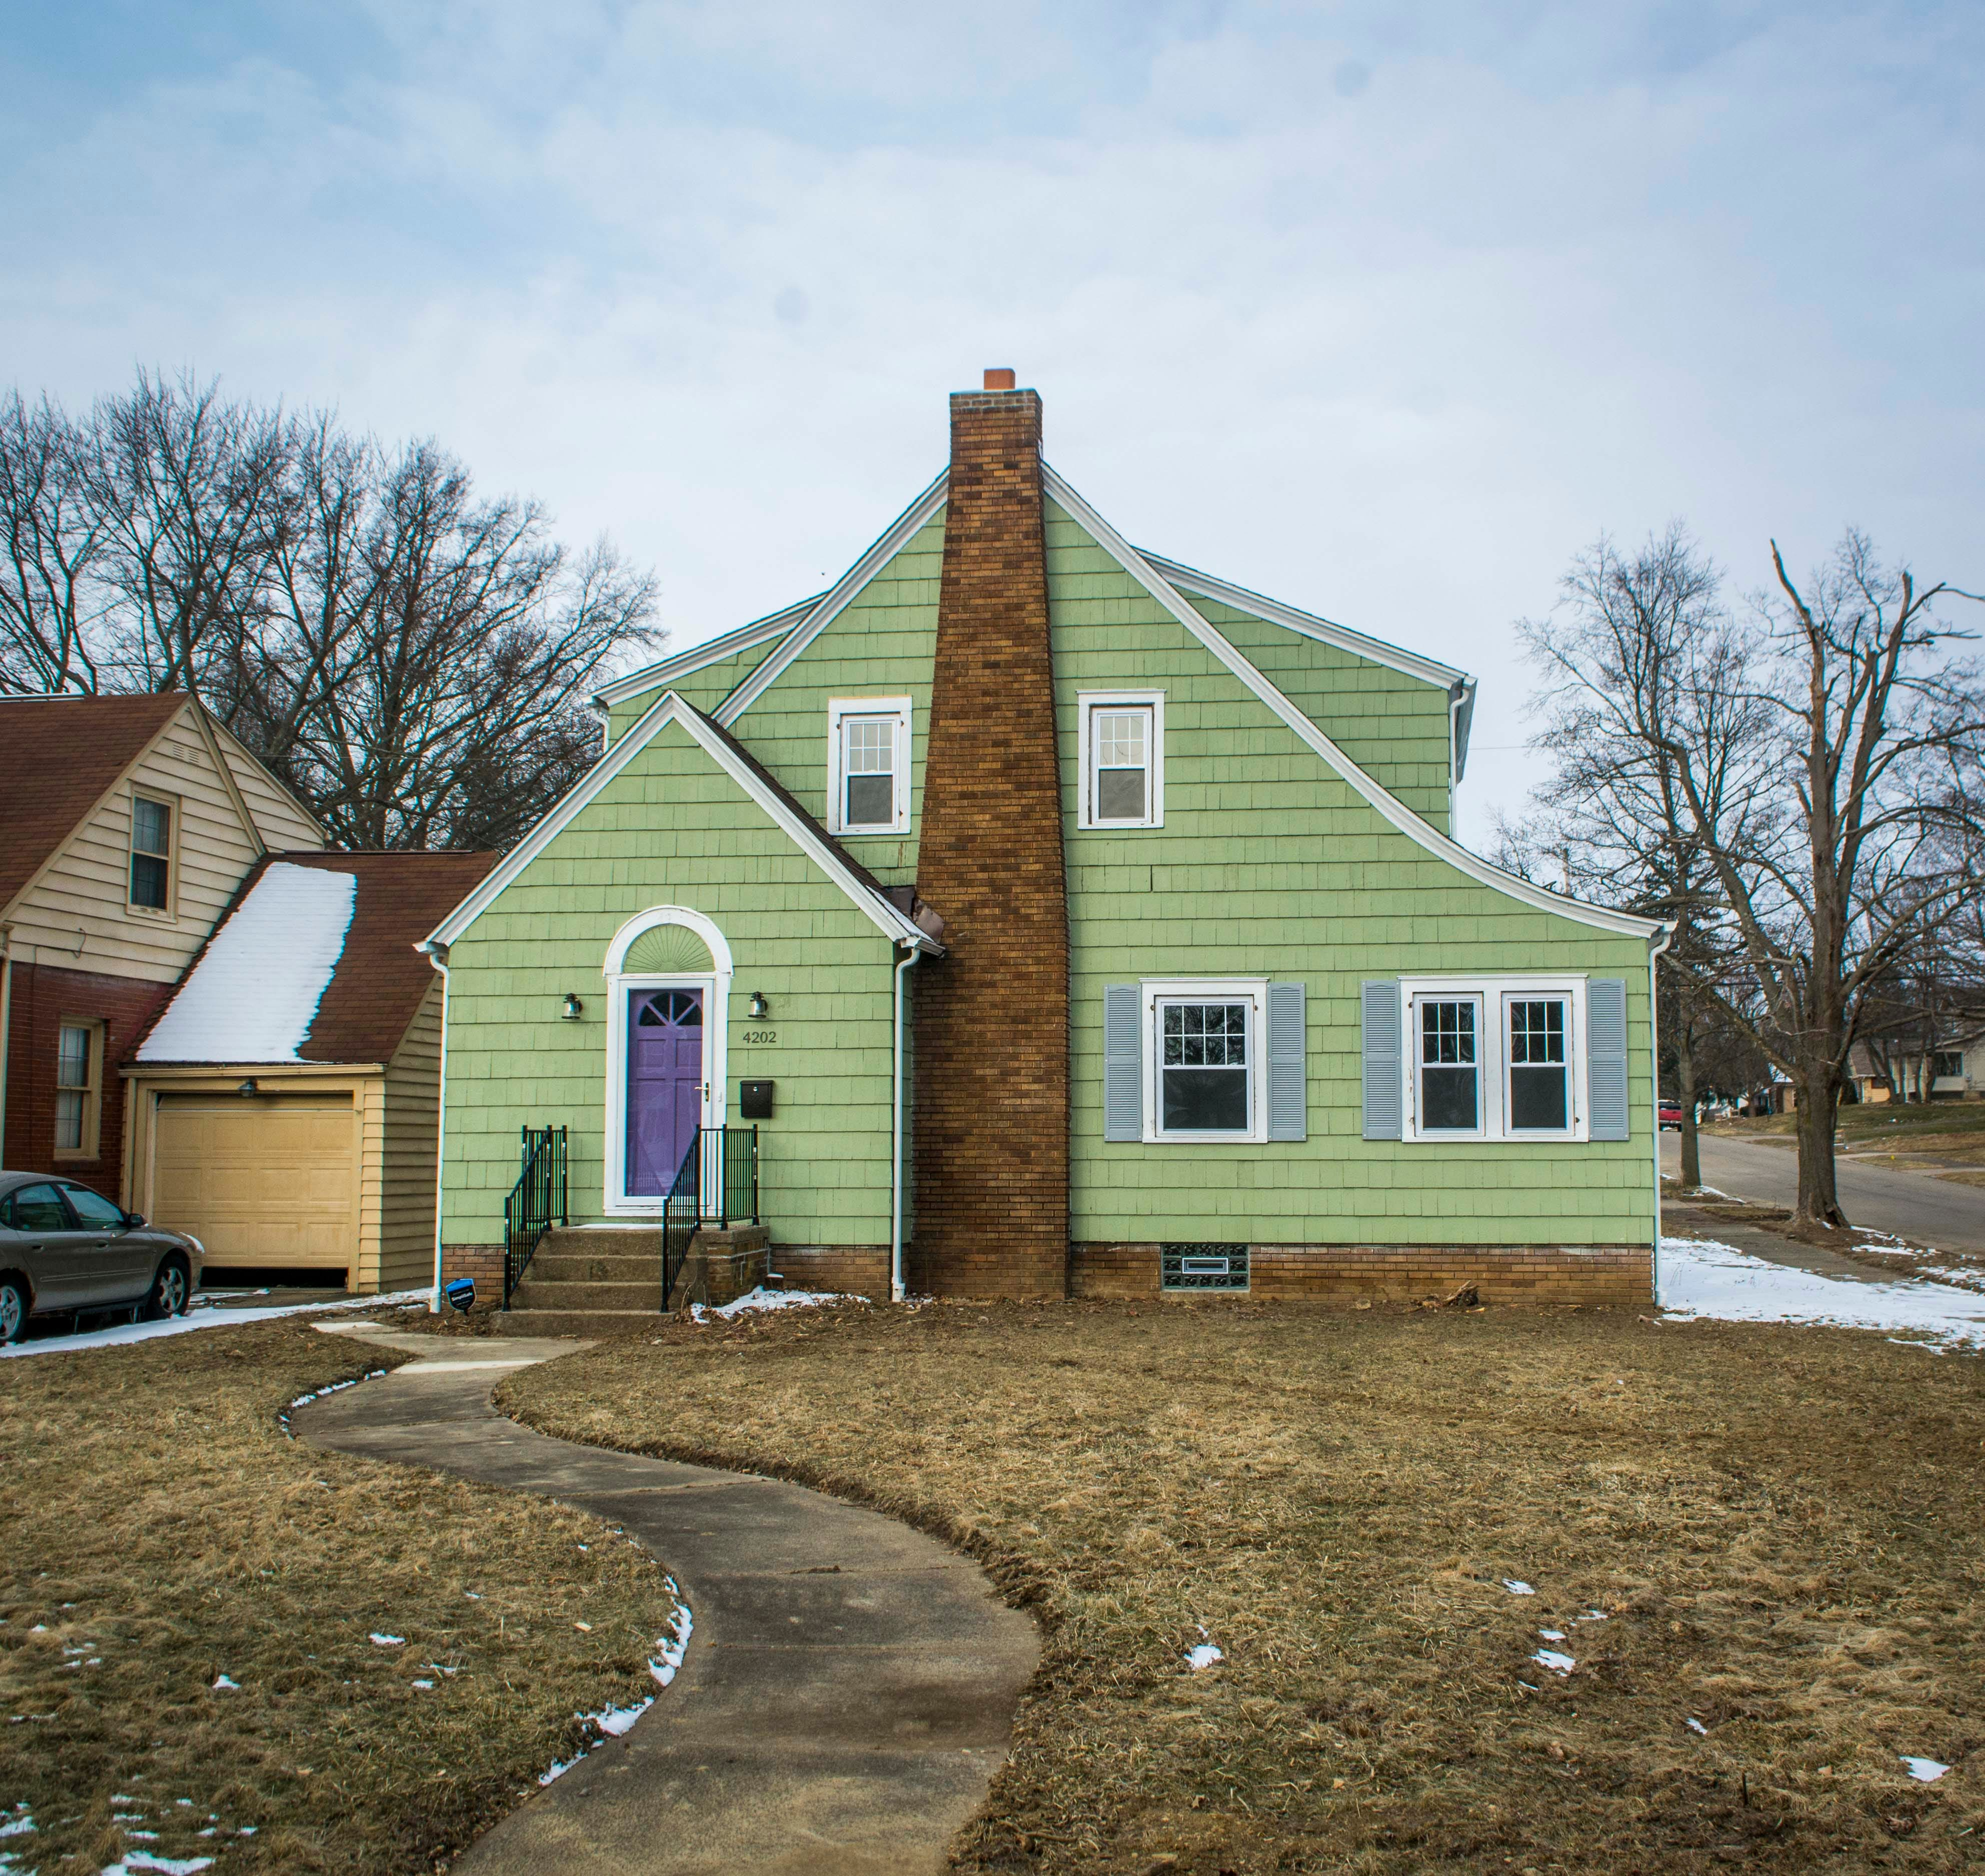 Youngstown Neighborhood Development Corp. renovated and sold this home at 4202 Rush Blvd. to a homeowner in 2019.